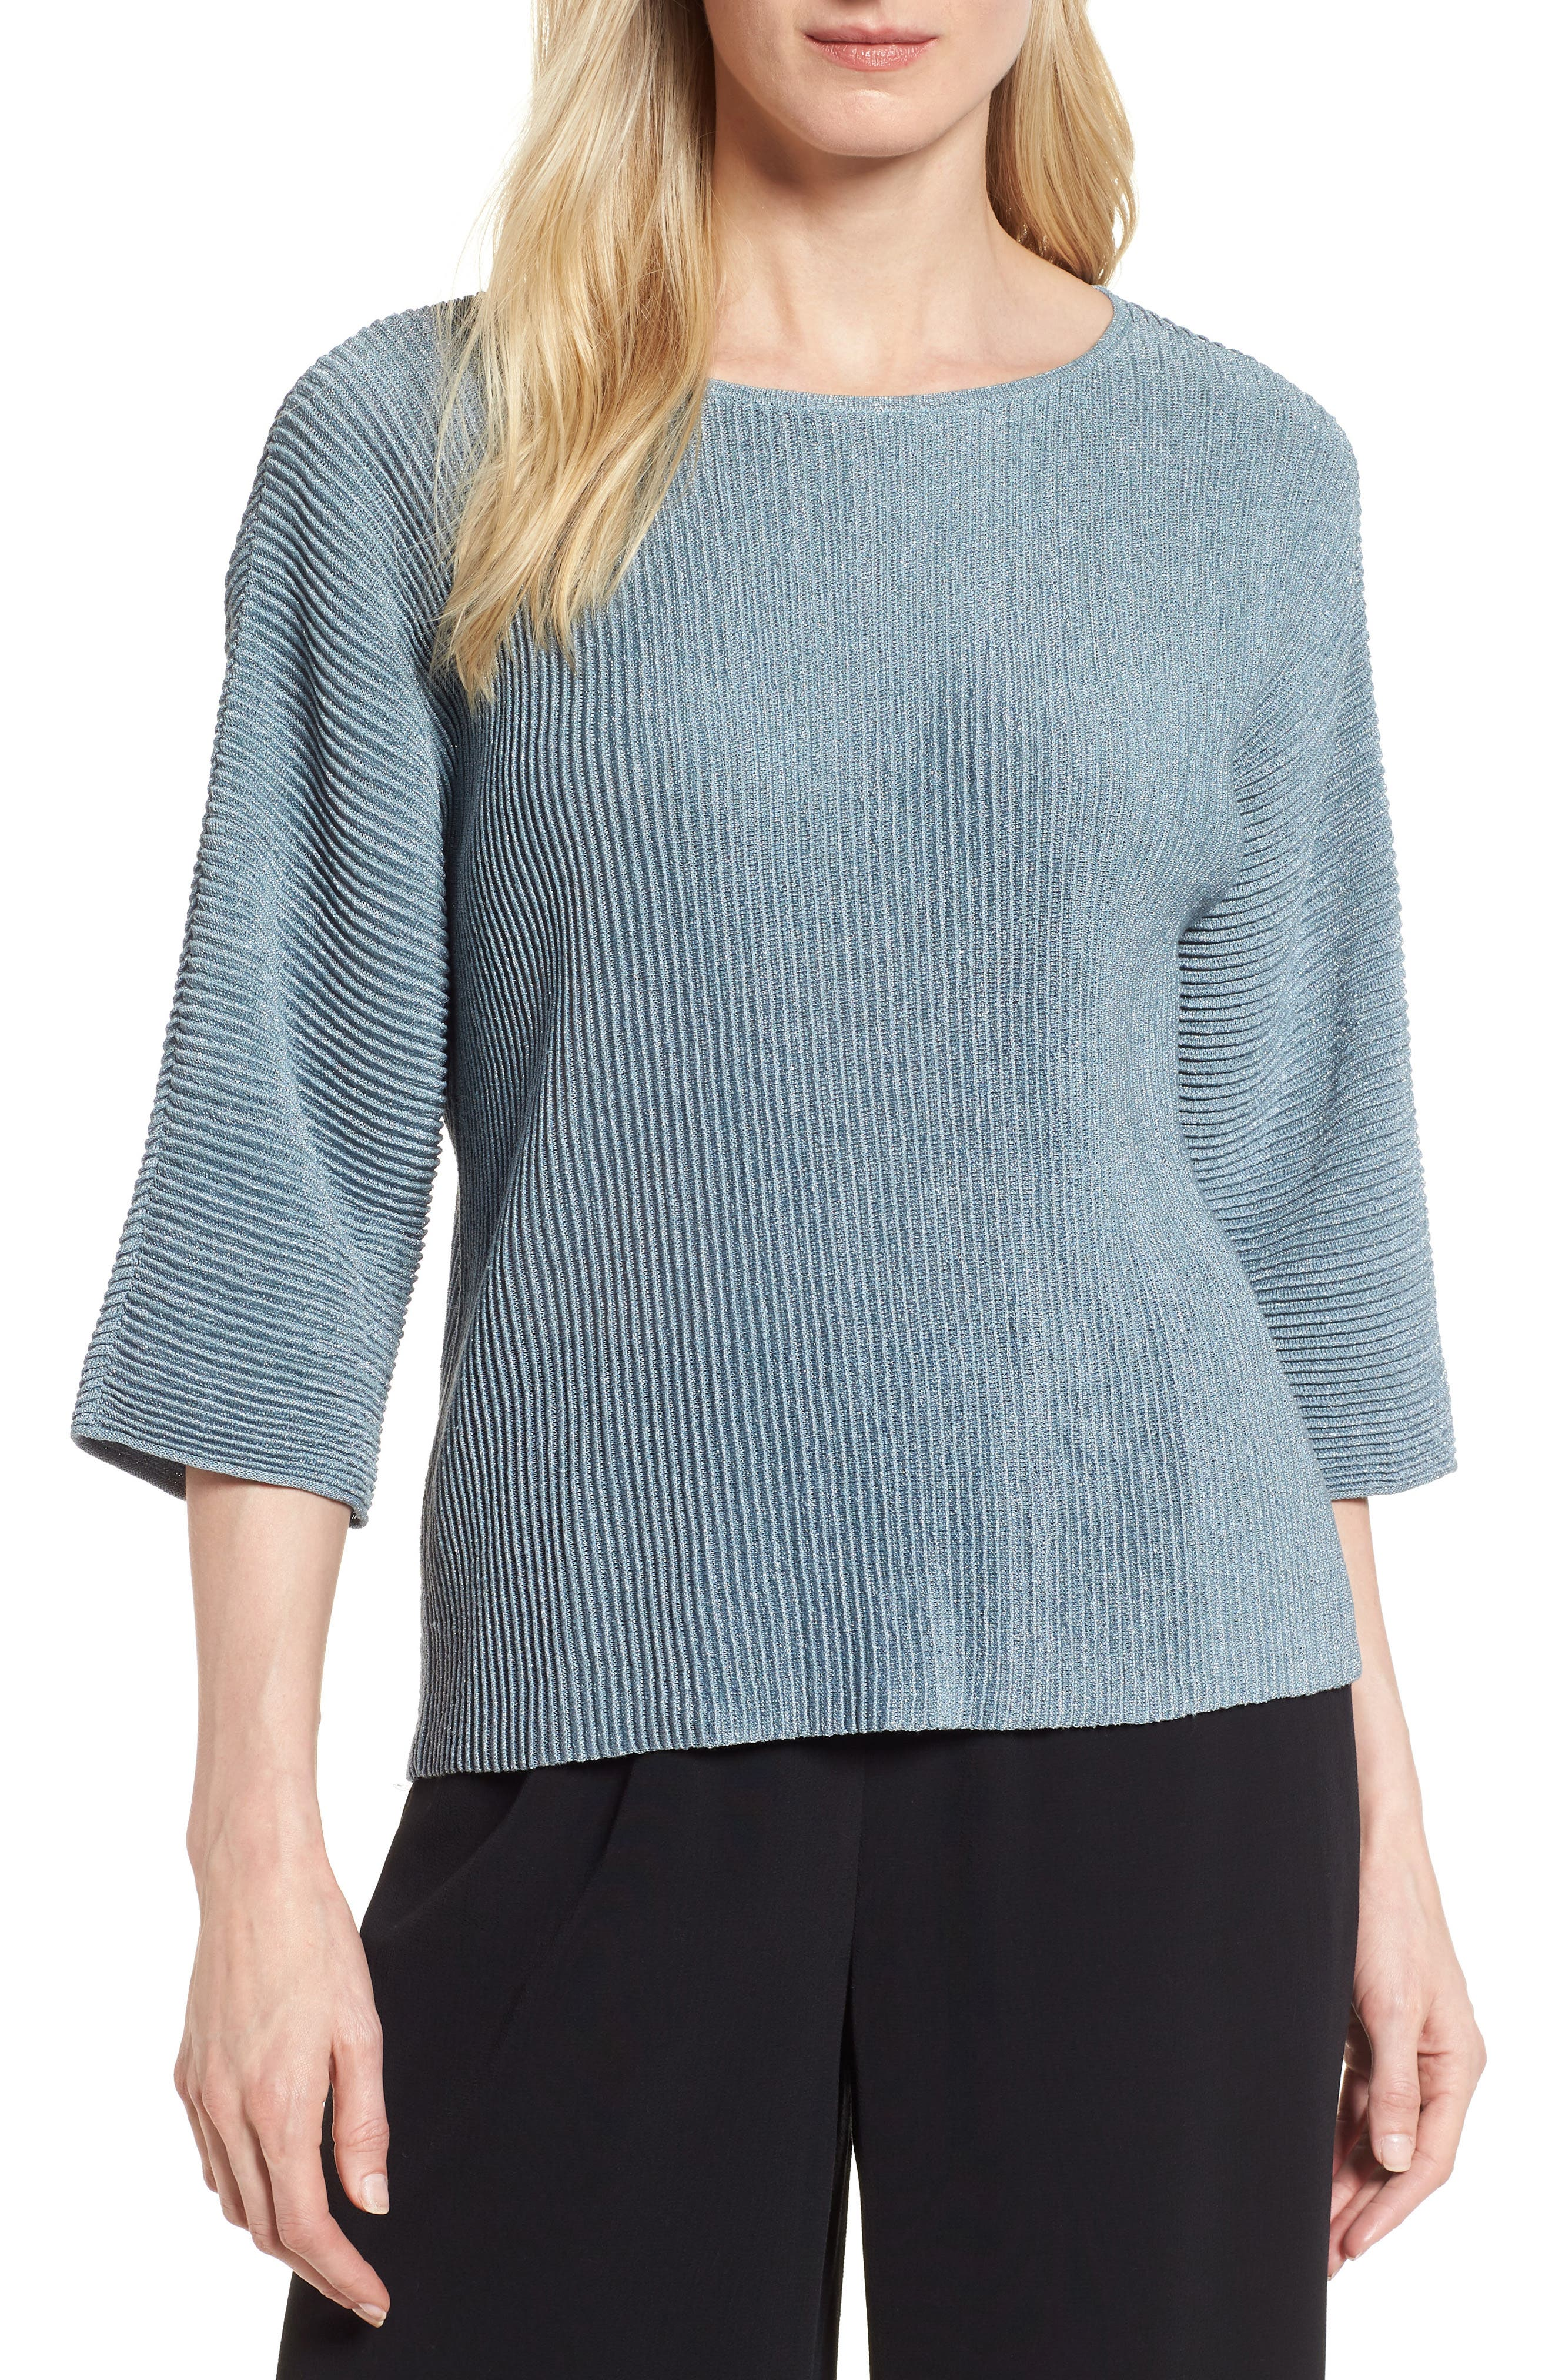 Metallic Hemp Blend Sweater,                             Main thumbnail 1, color,                             Blue Steel